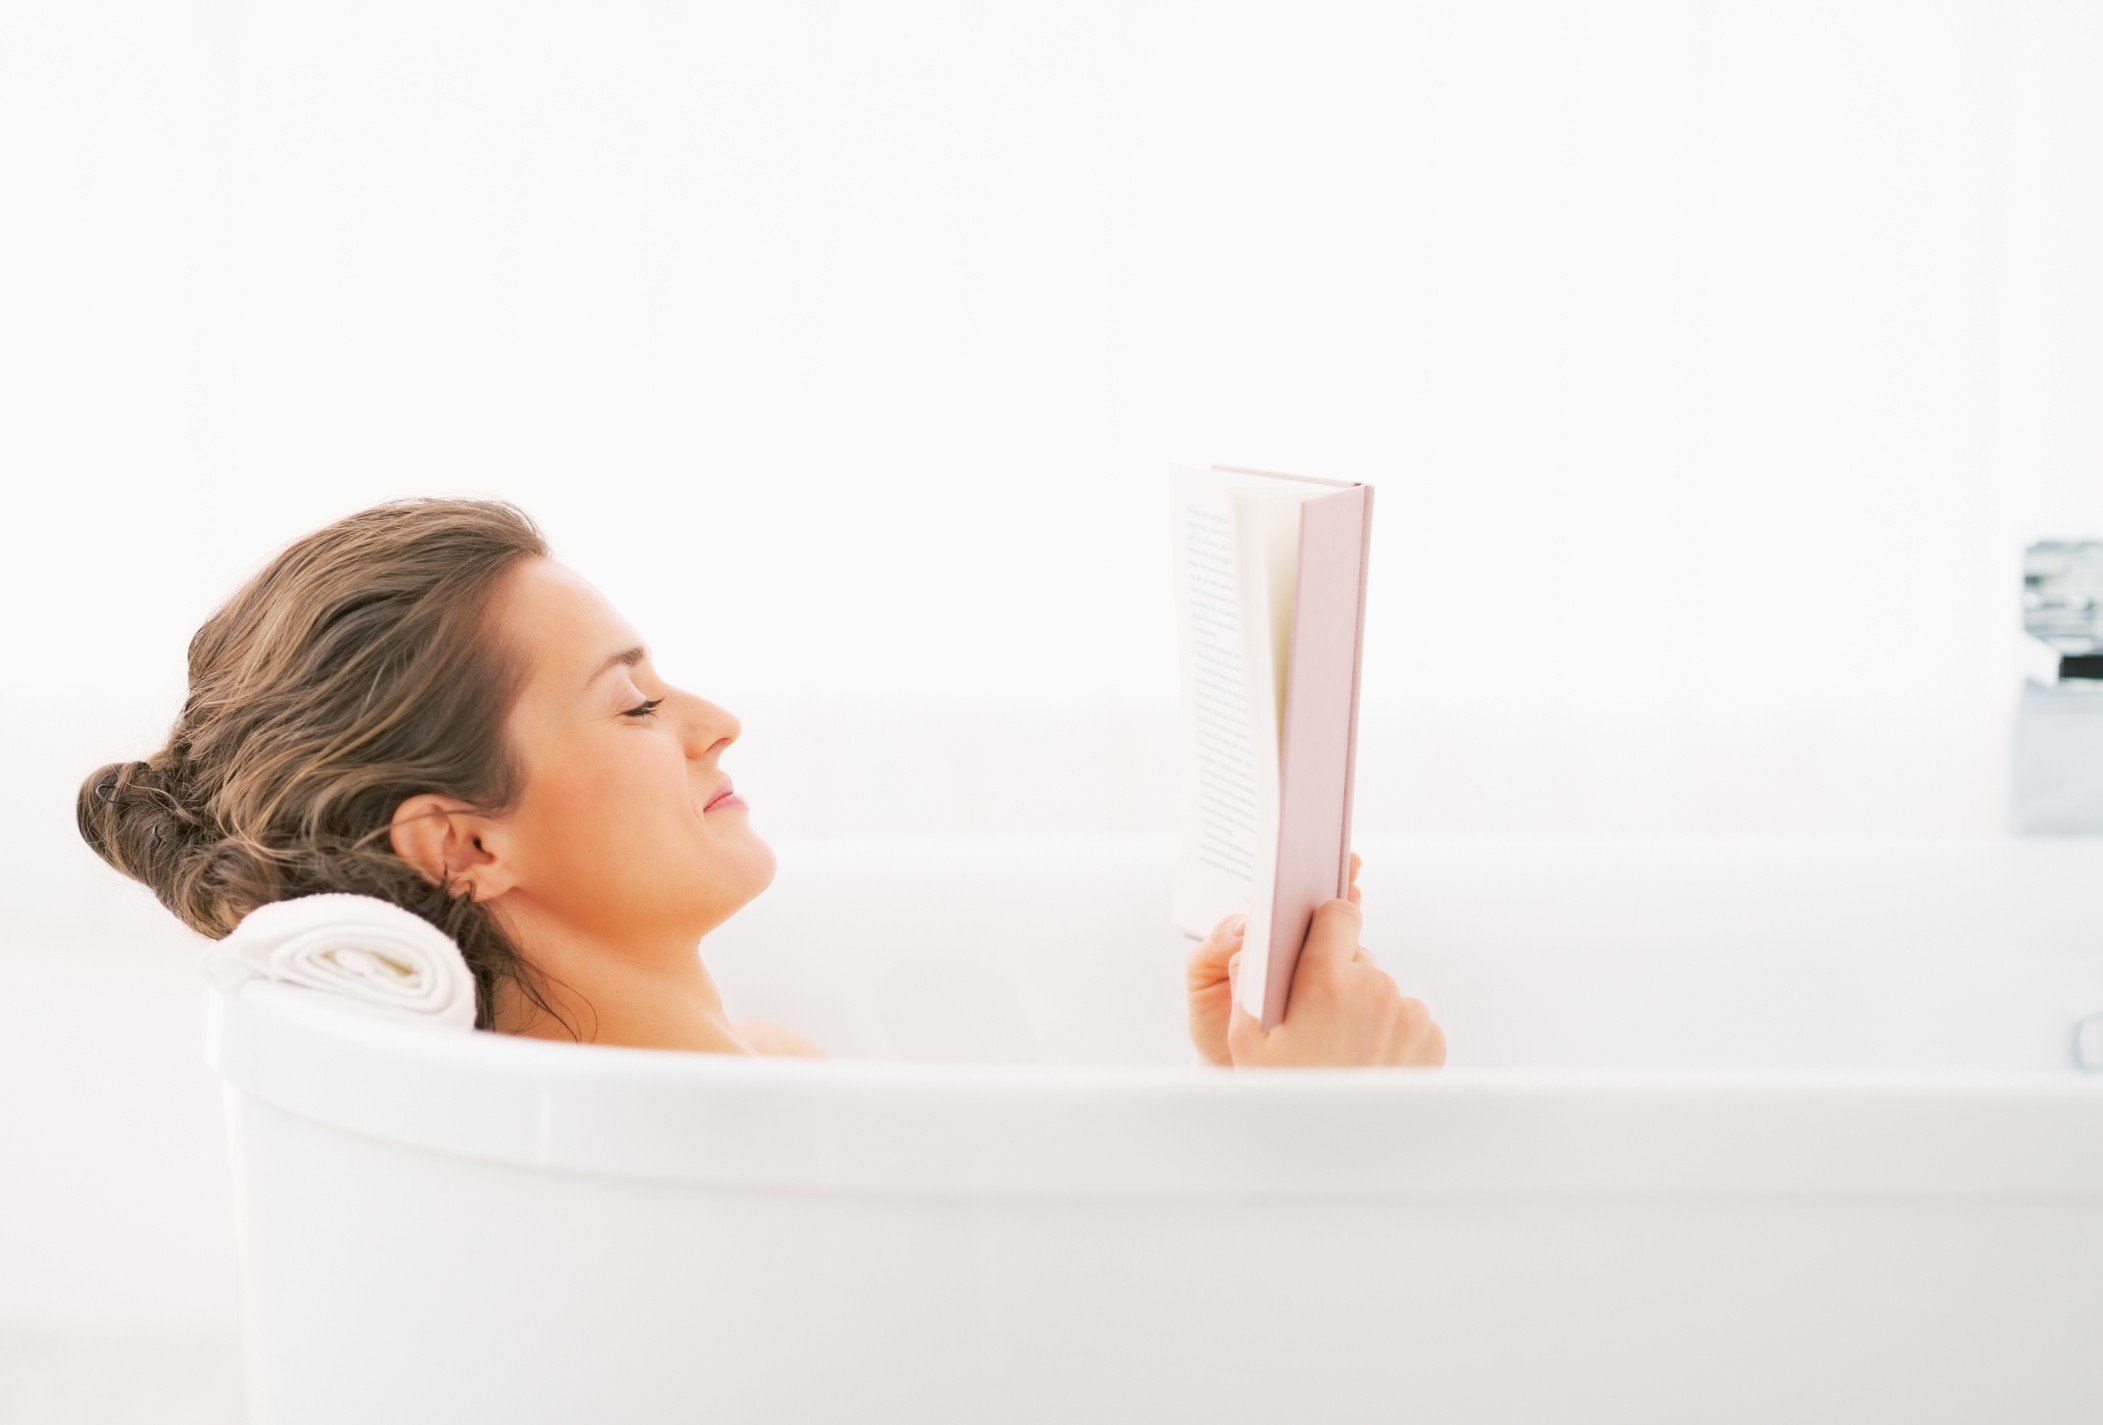 Young woman reading book in bathtub